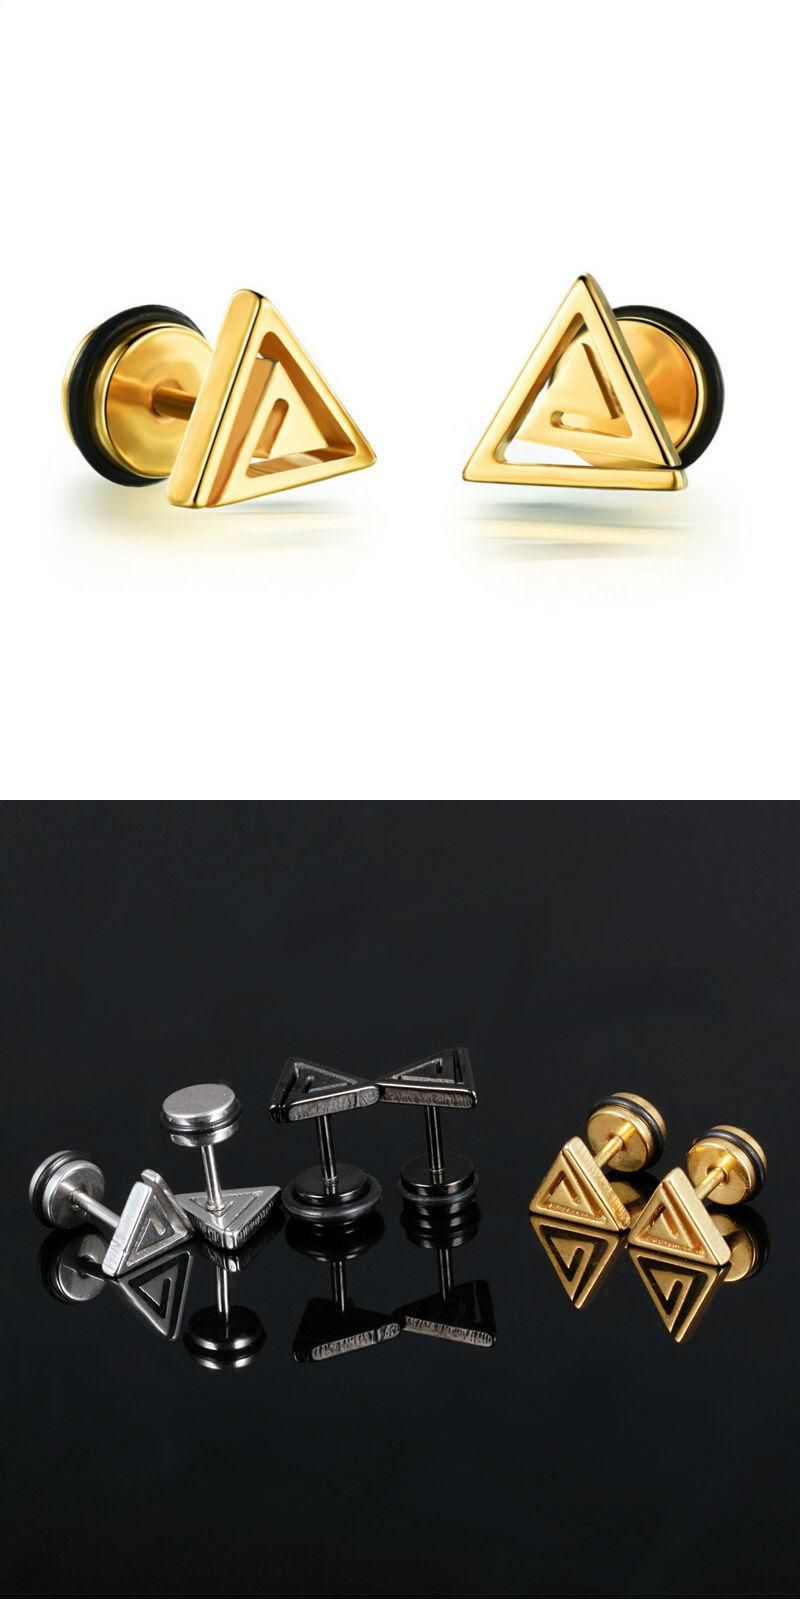 stud stainless from square item cross piercing ear men fashion helix for studs tragus mens cartilage steel earring in punk earrings jewelry